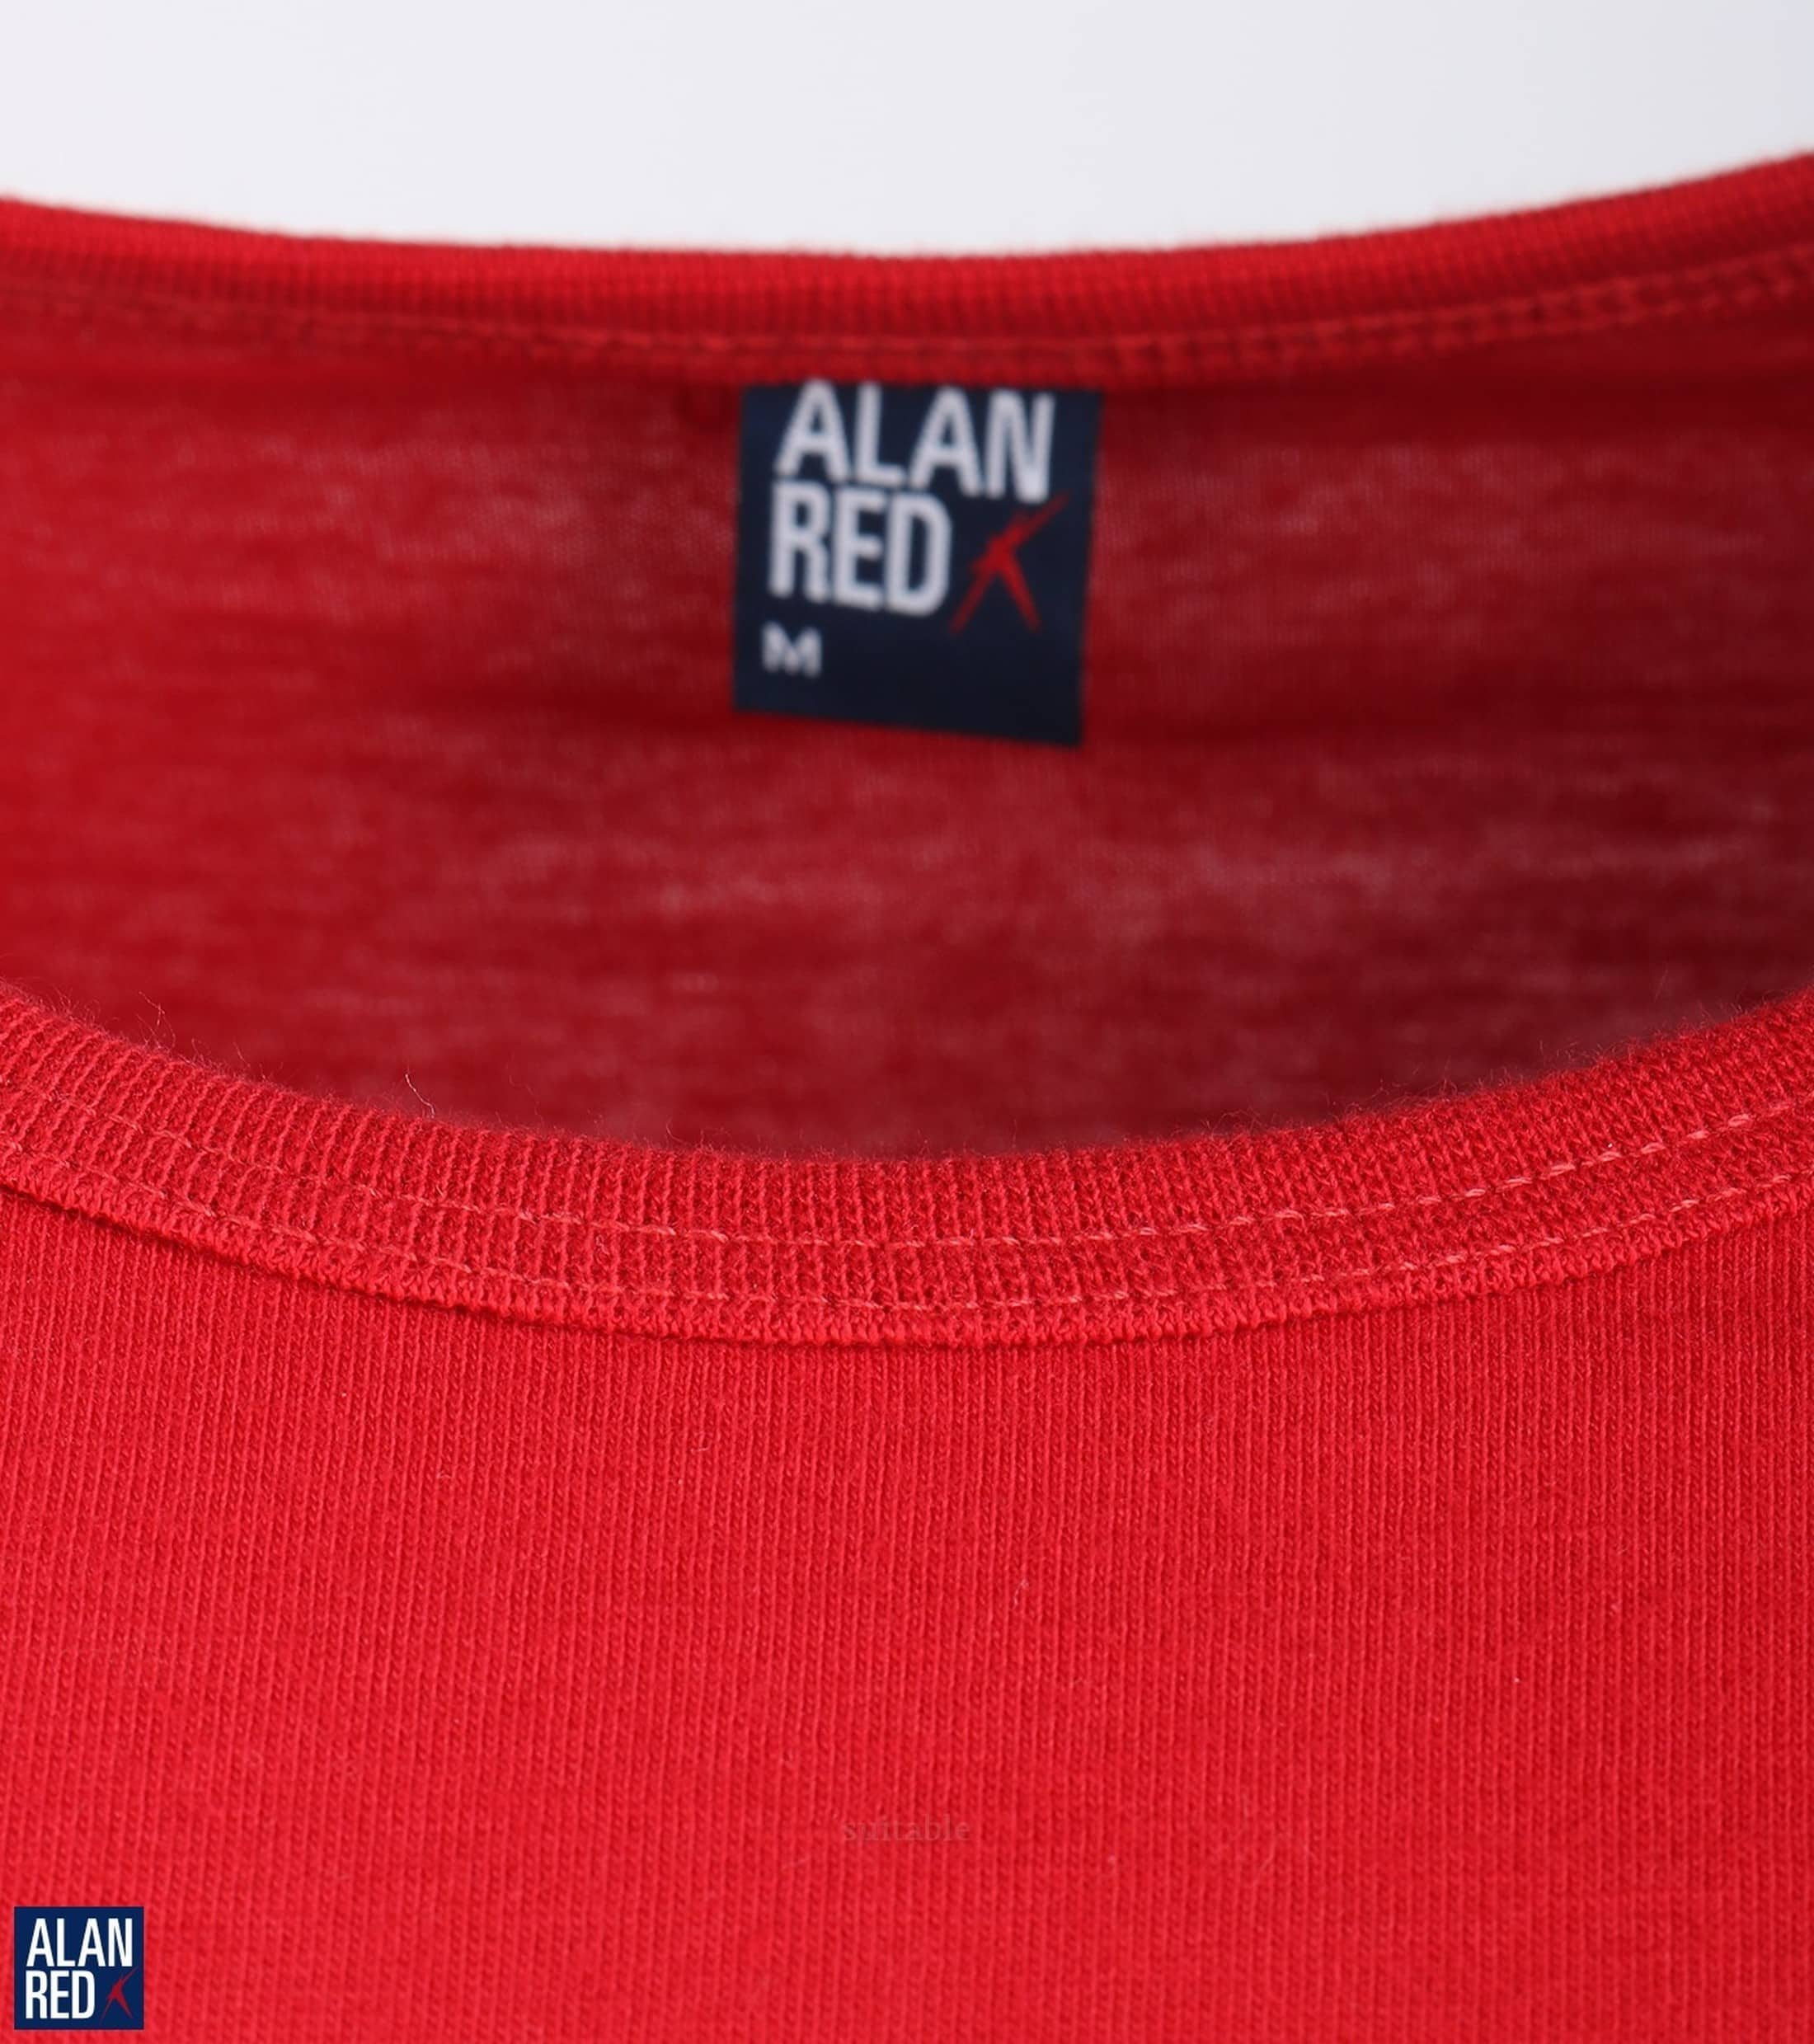 Alan Red Derby O-Neck T-shirt Red 1-Pack foto 1